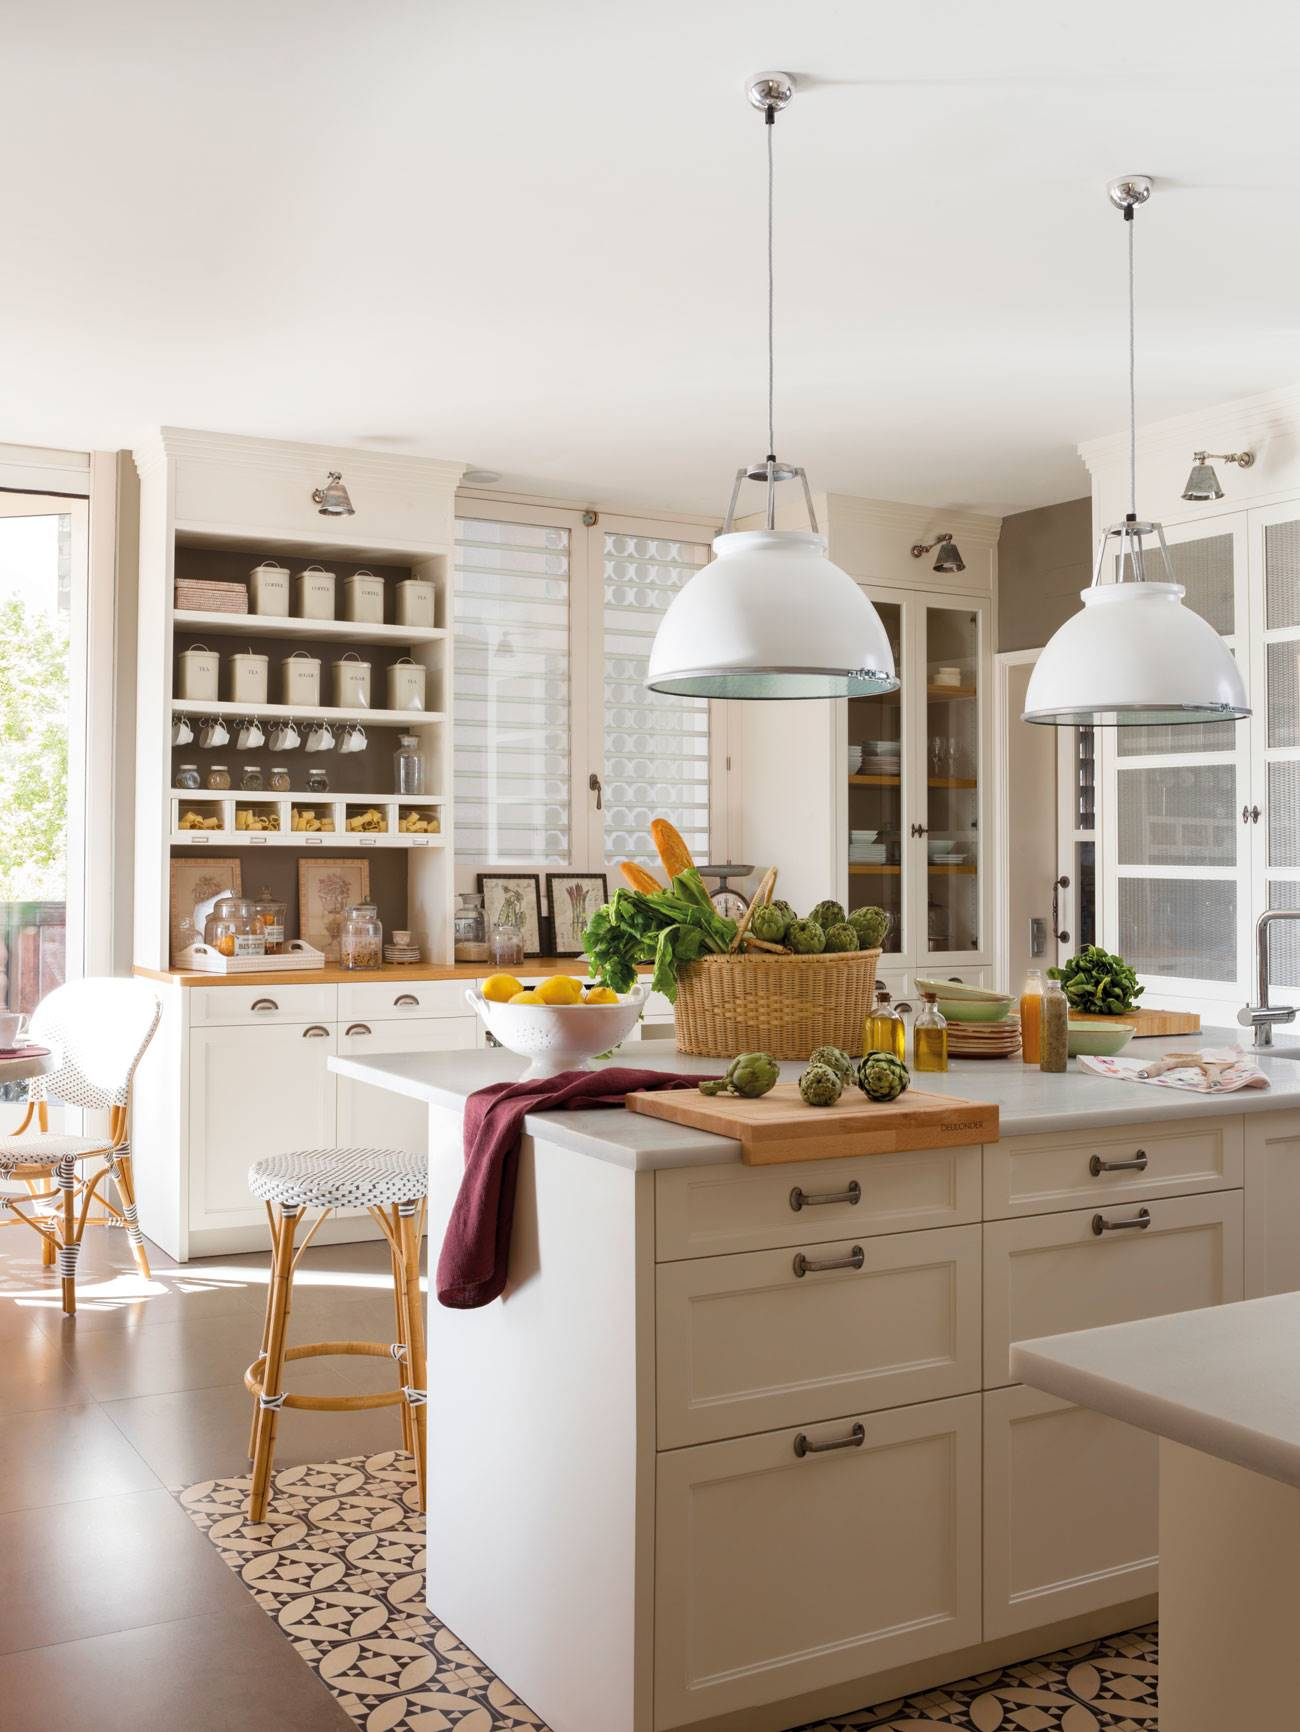 kitchen-with-island-and-hydraulic-floor-delimiter-and-ceiling-lamps 379014. Elegant and white